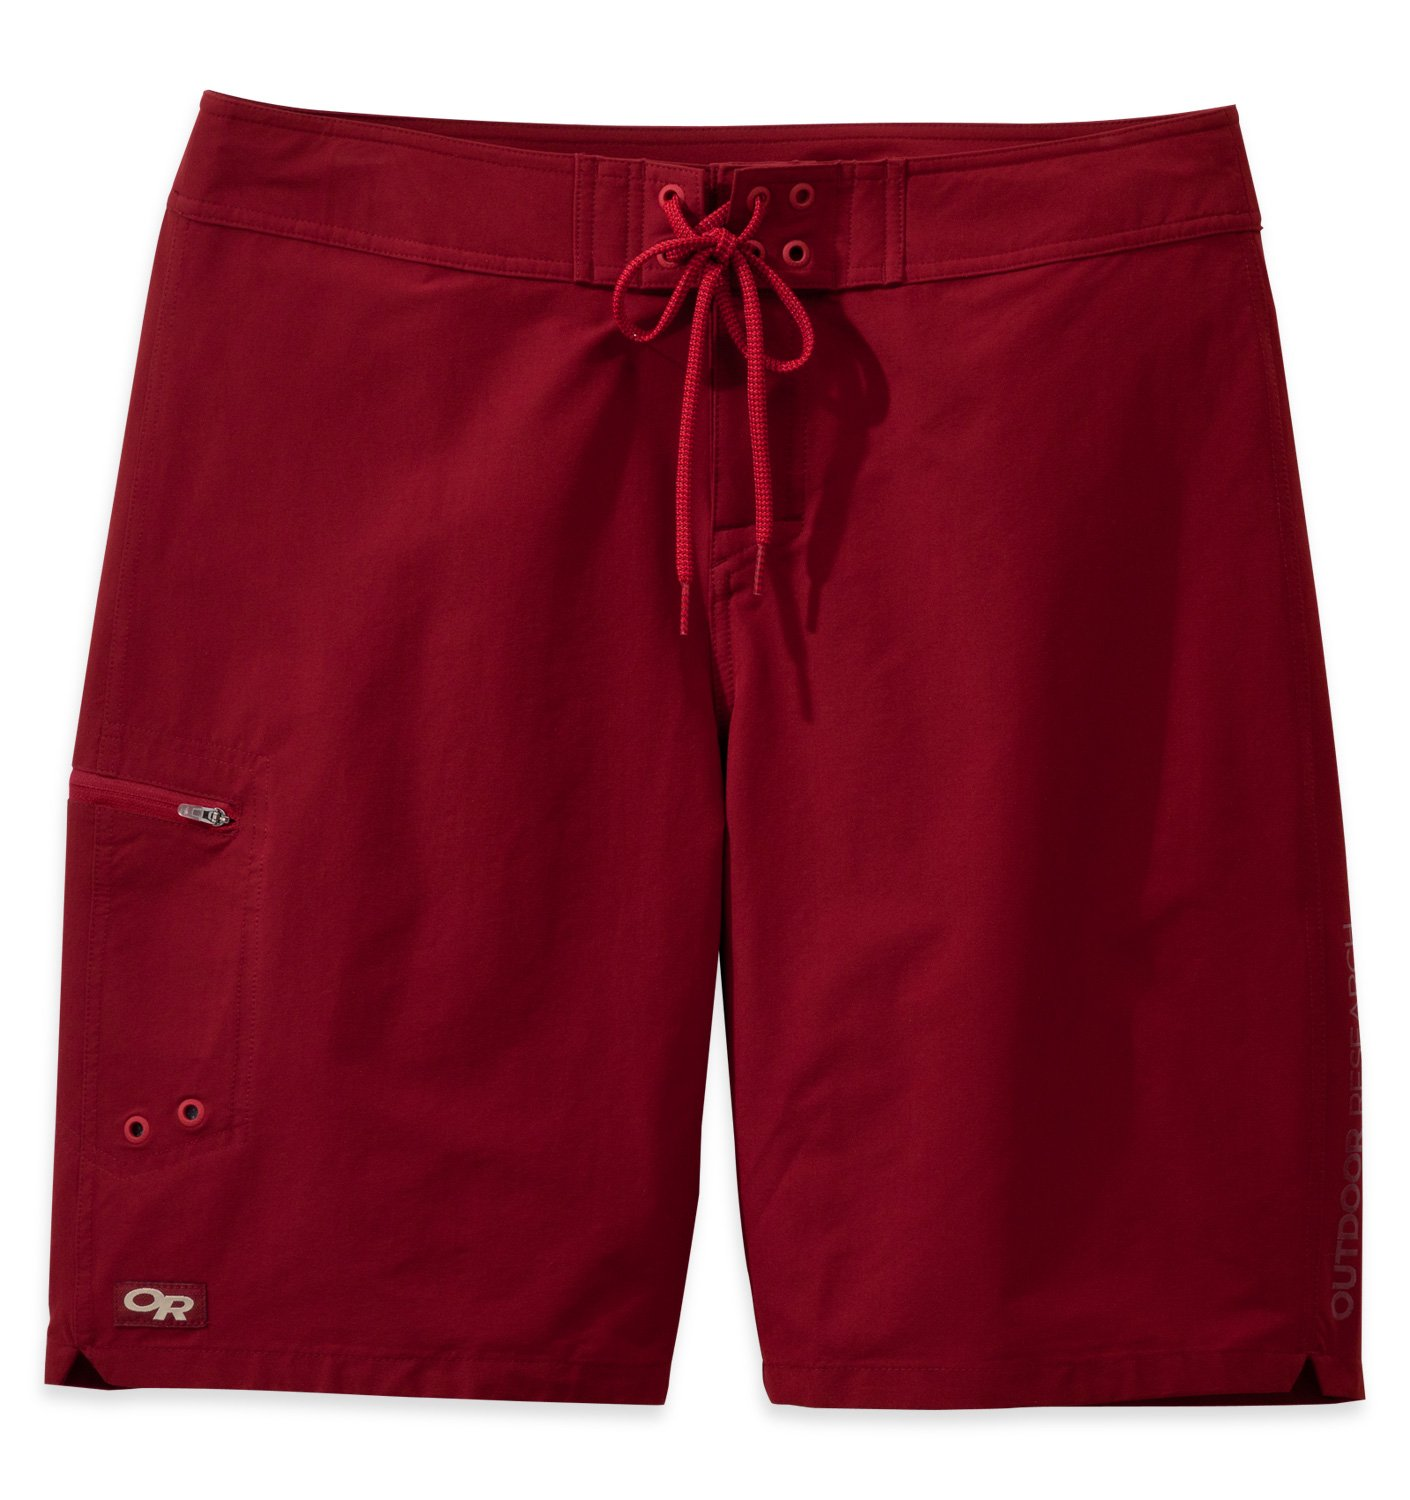 Amazon.com : Outdoor Research Men's Phuket Boardshorts : Sports & Outdoors